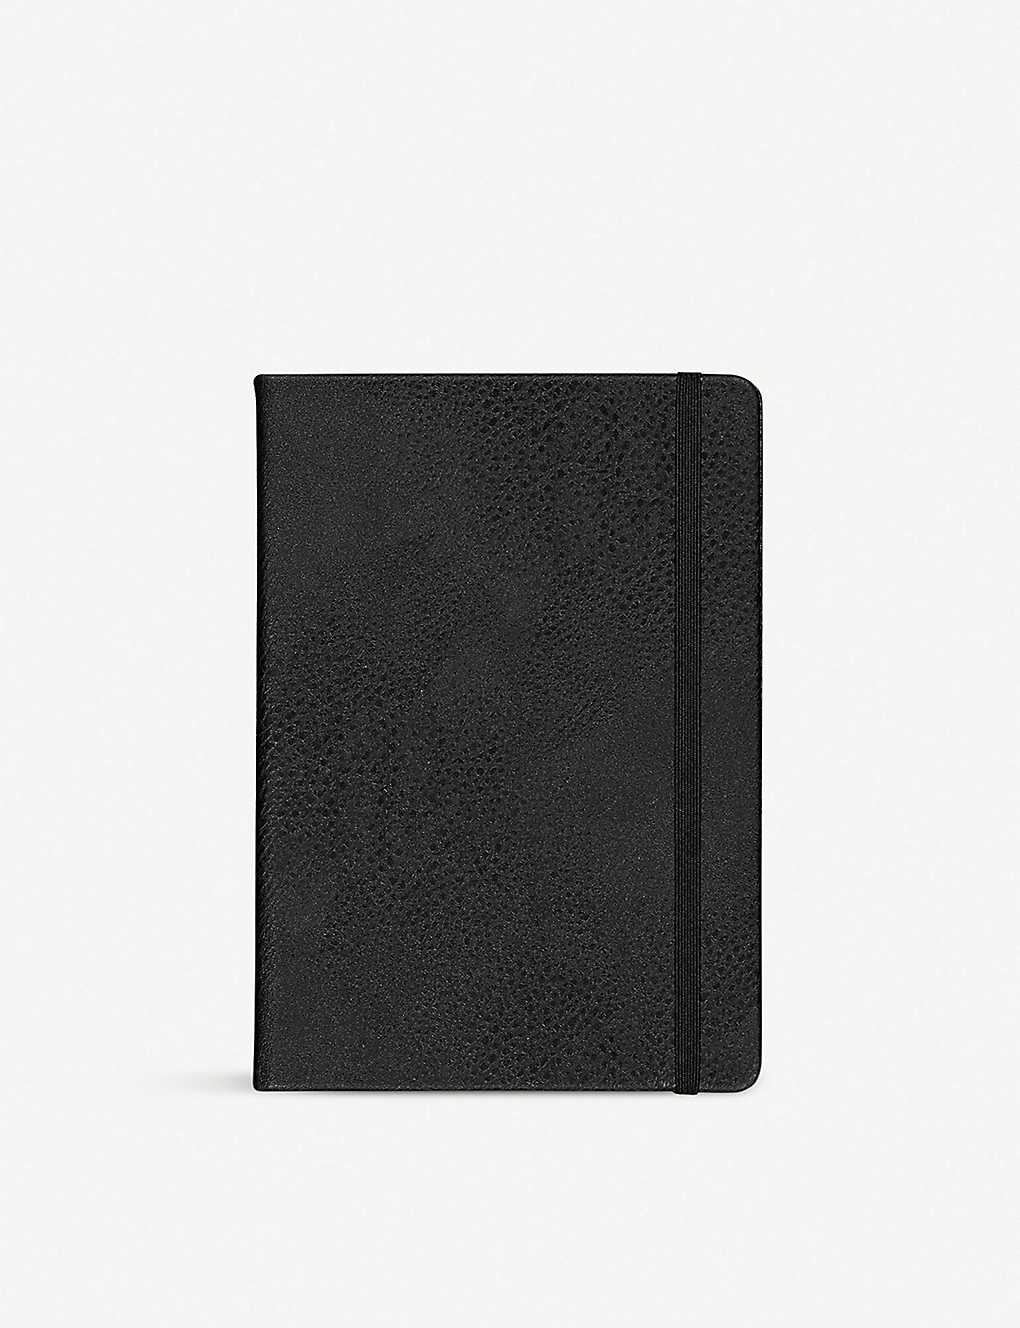 TYPO: Buffalo A5 journal